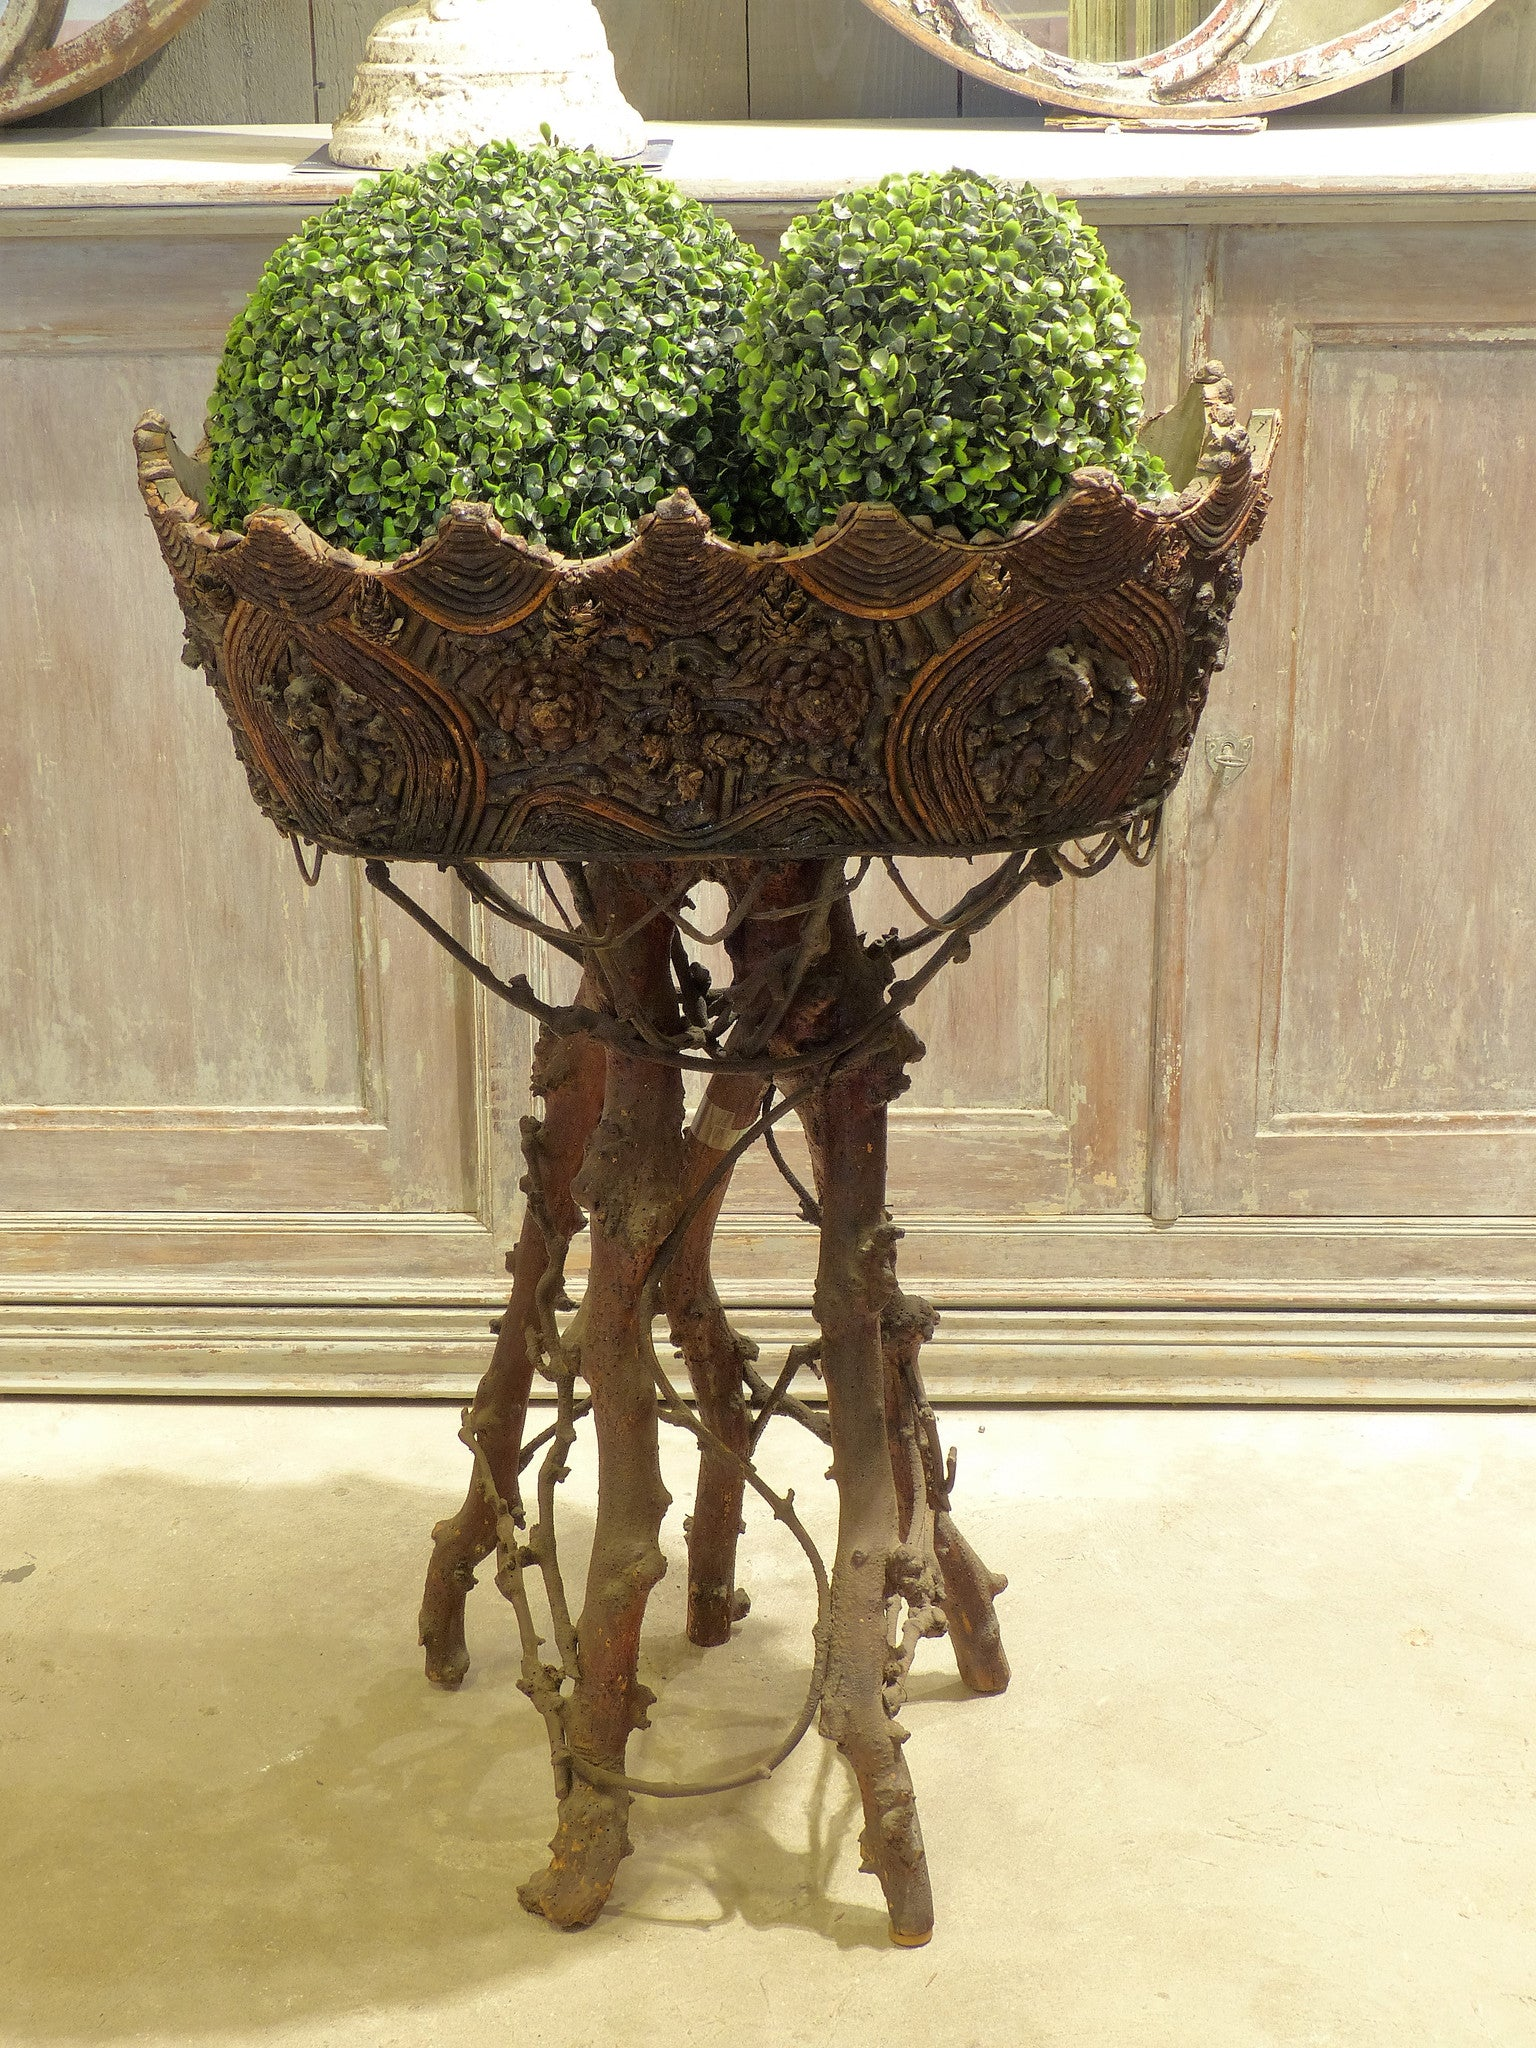 French Black forest planter - 19th century